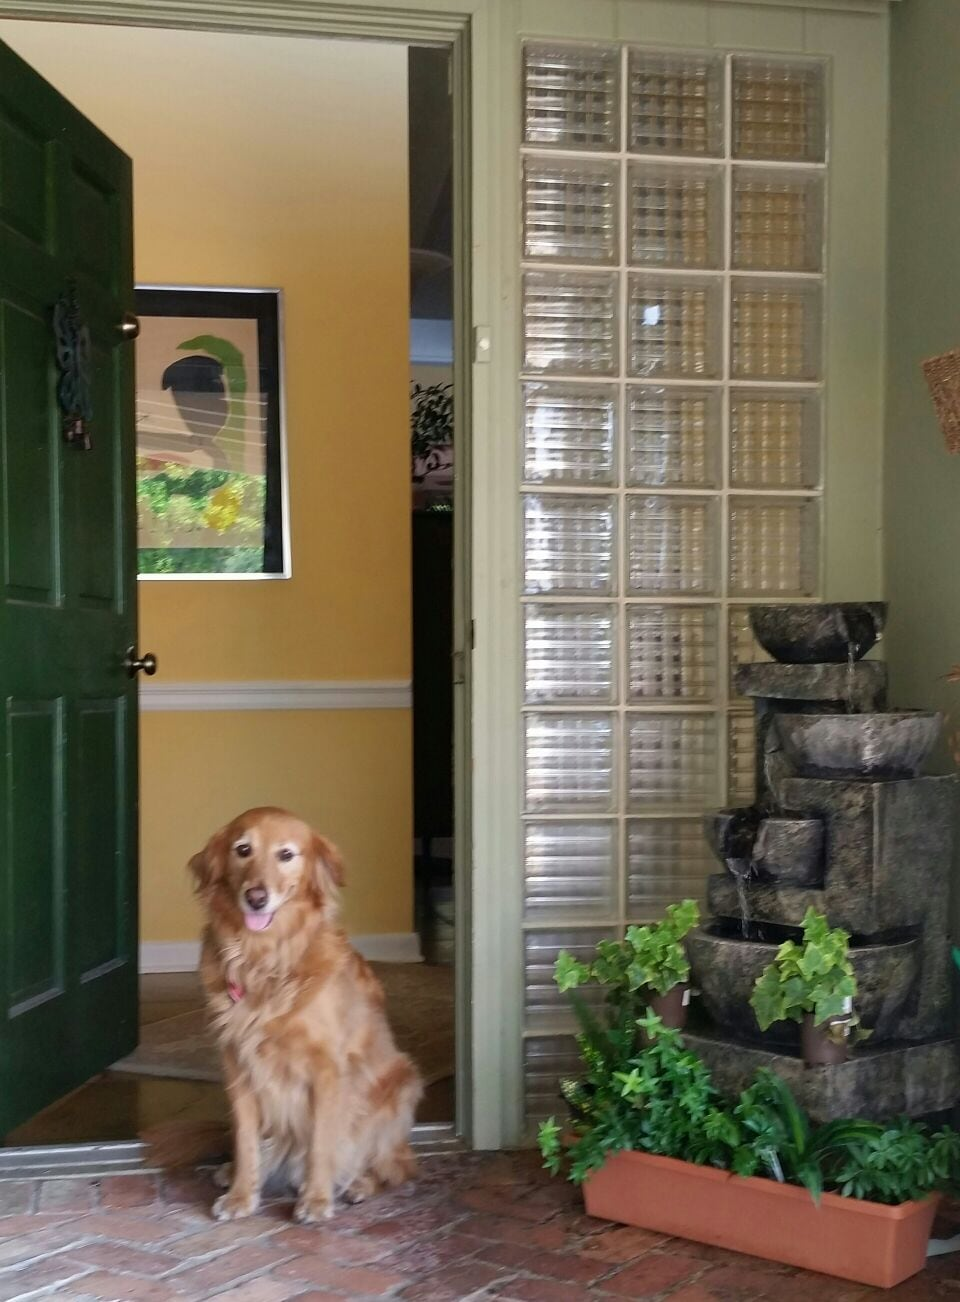 Ananda, my Golden is eager to greet you!